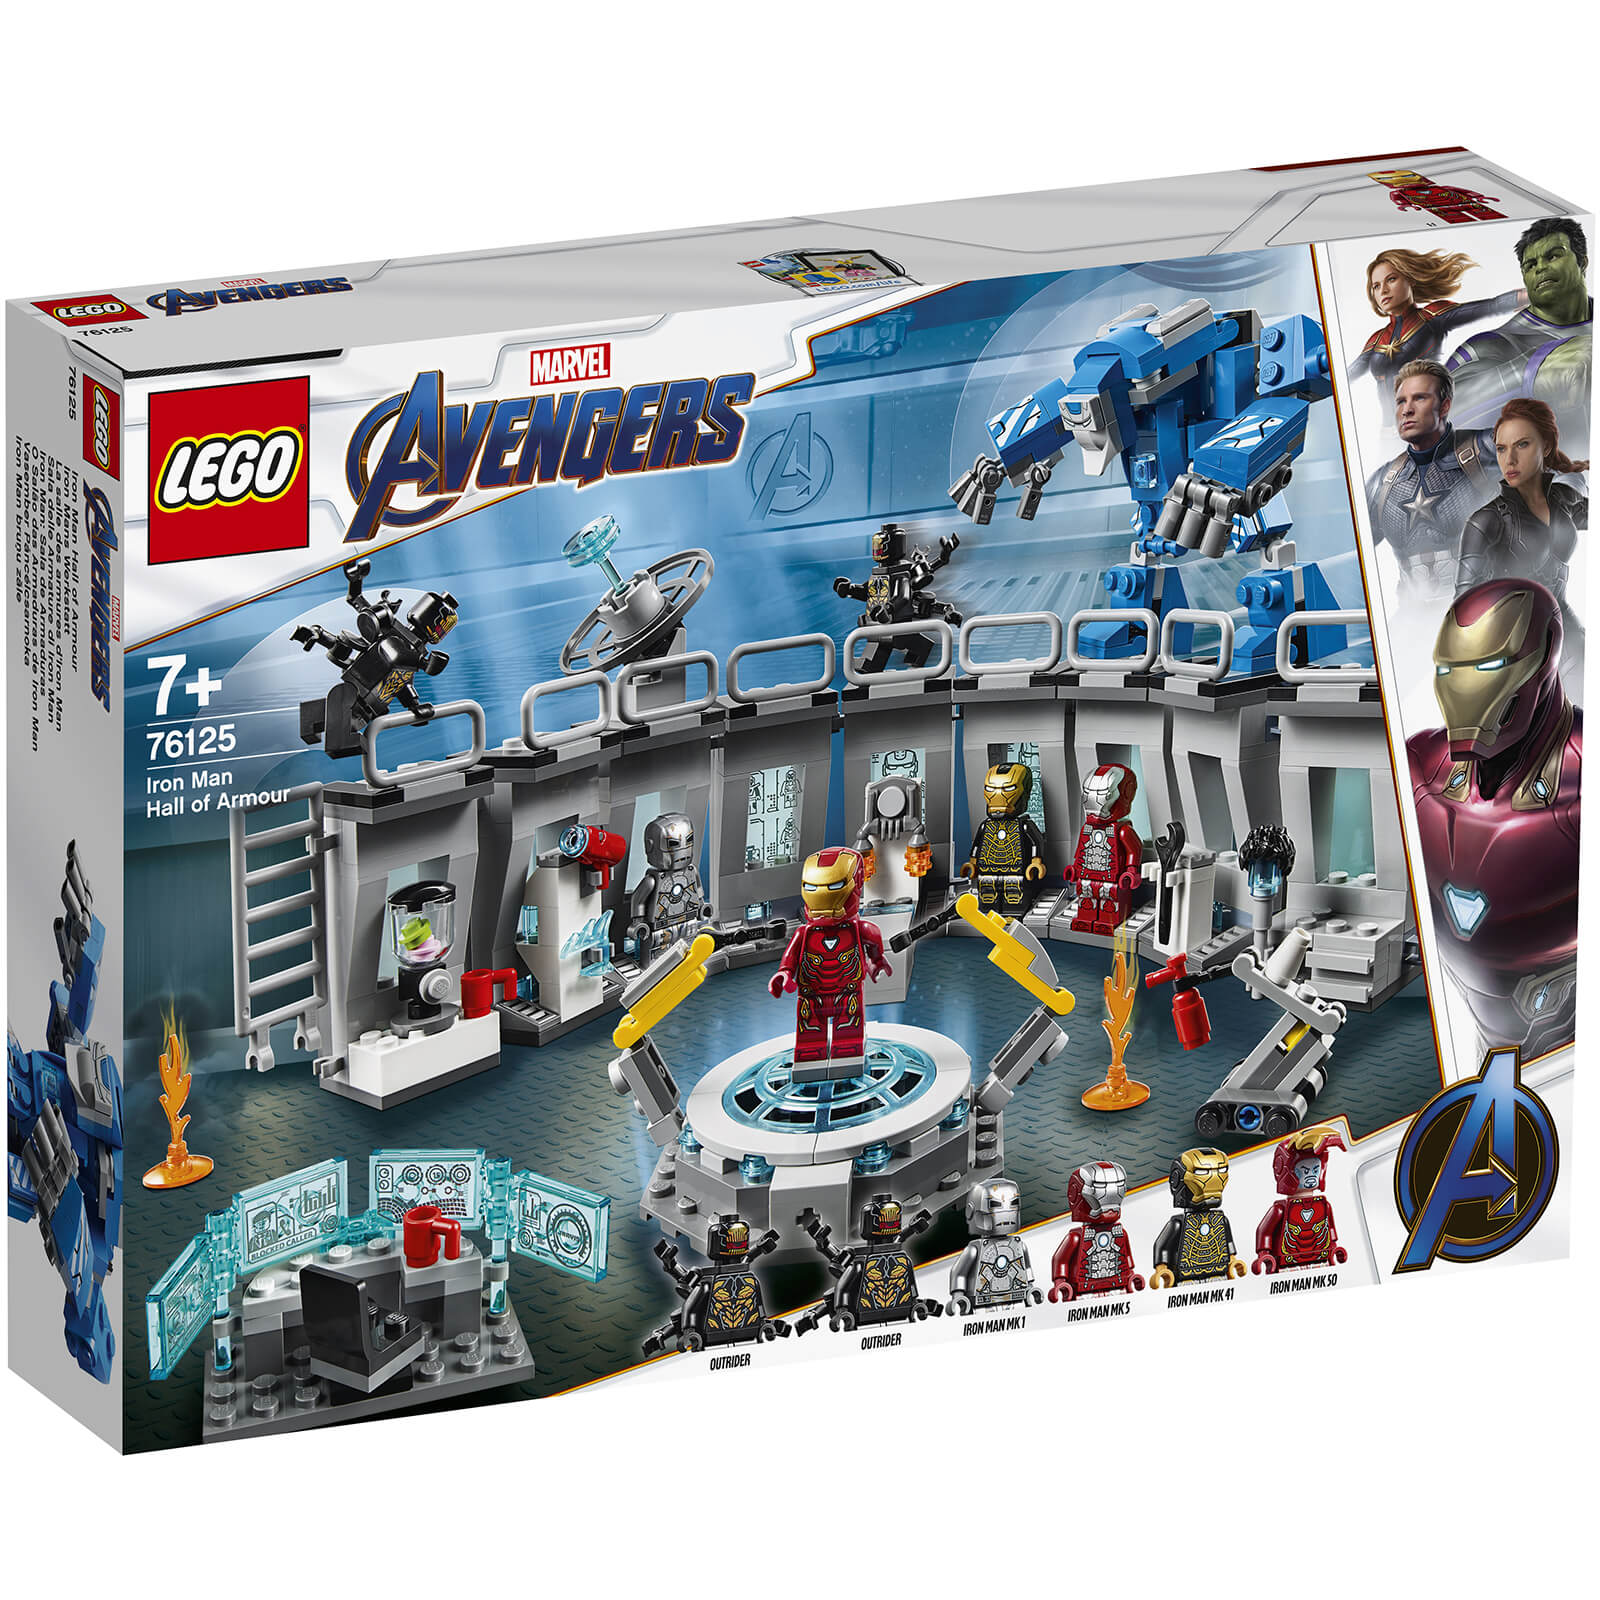 LEGO Marvel Avengers Iron Man Hall Of Armor Lab Set (76125)